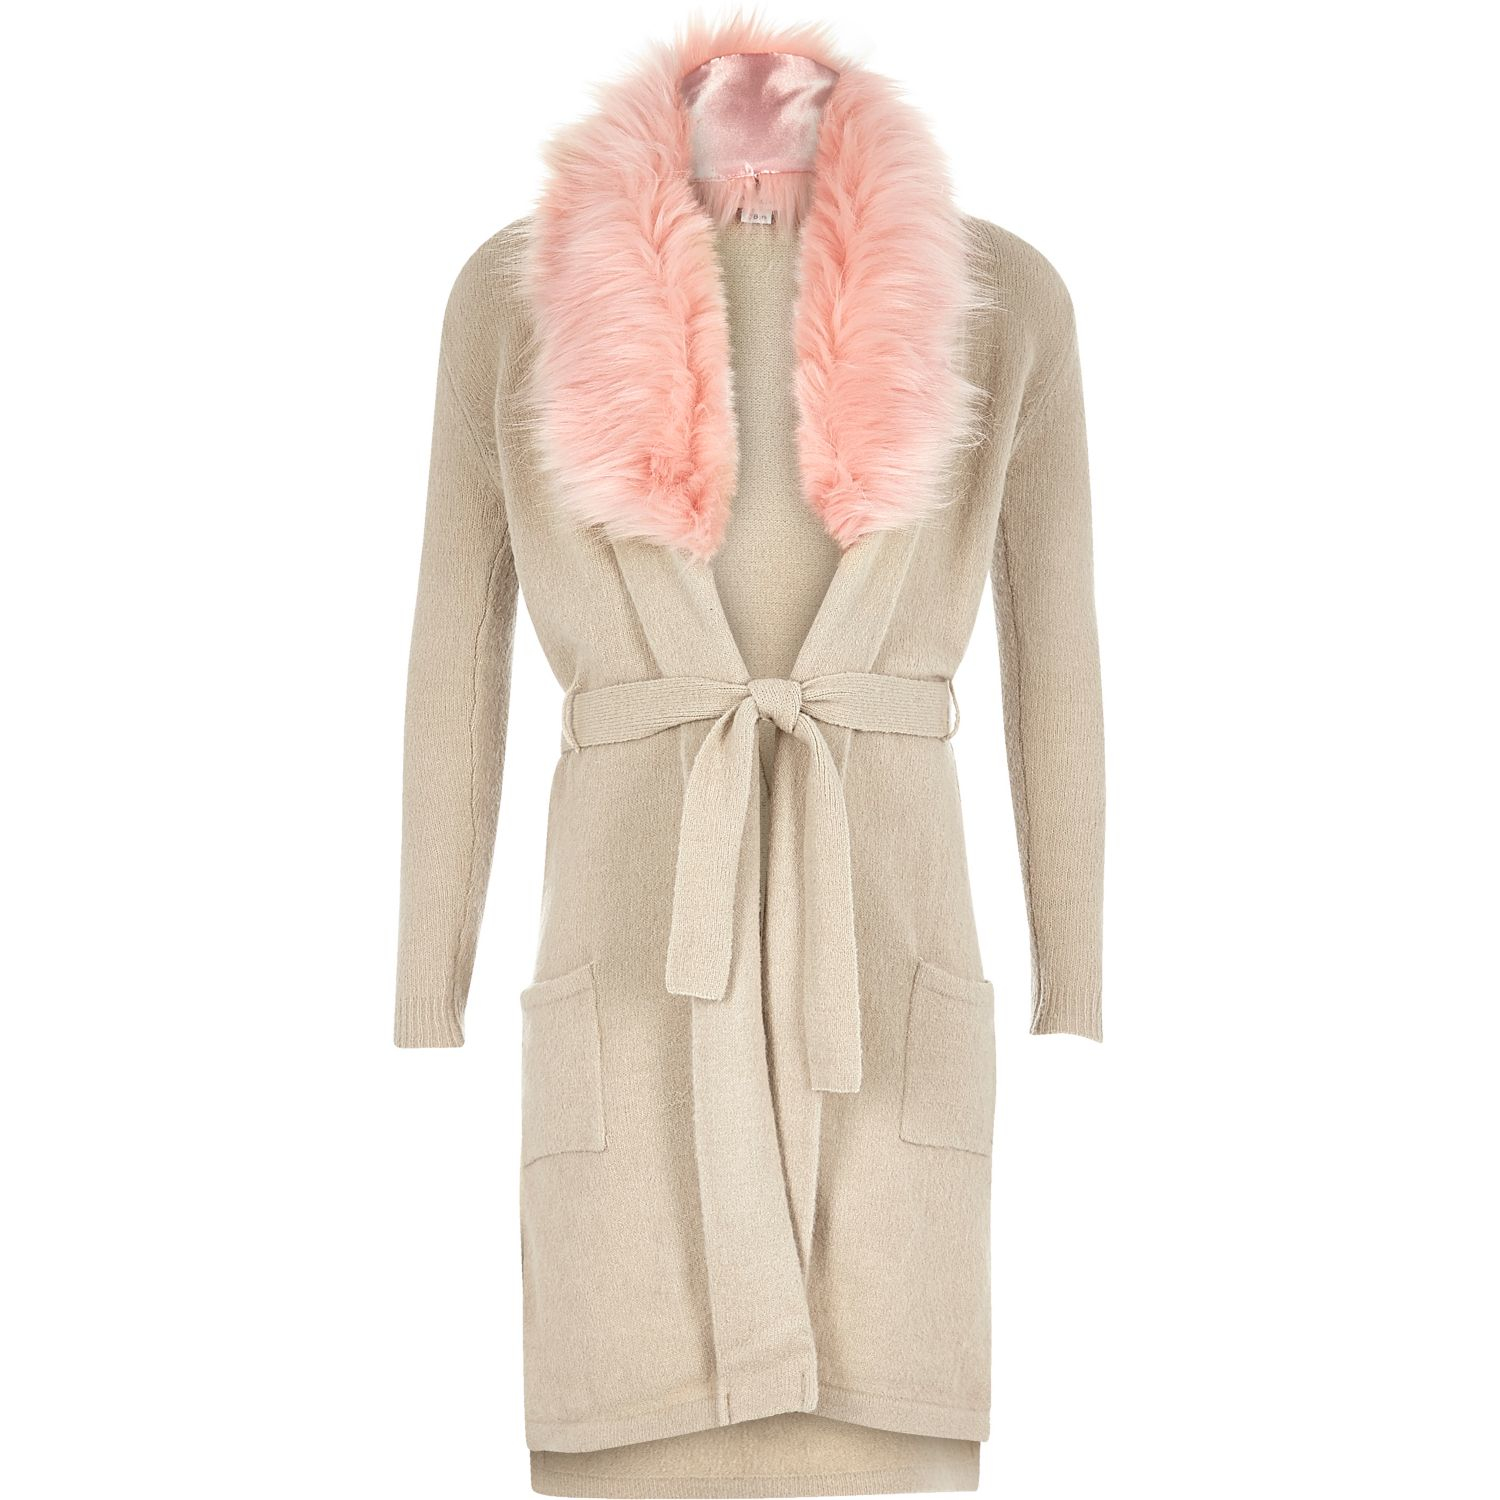 6e147a909 River Island Girls Beige Faux Fur Collar Long Cardigan in Natural - Lyst